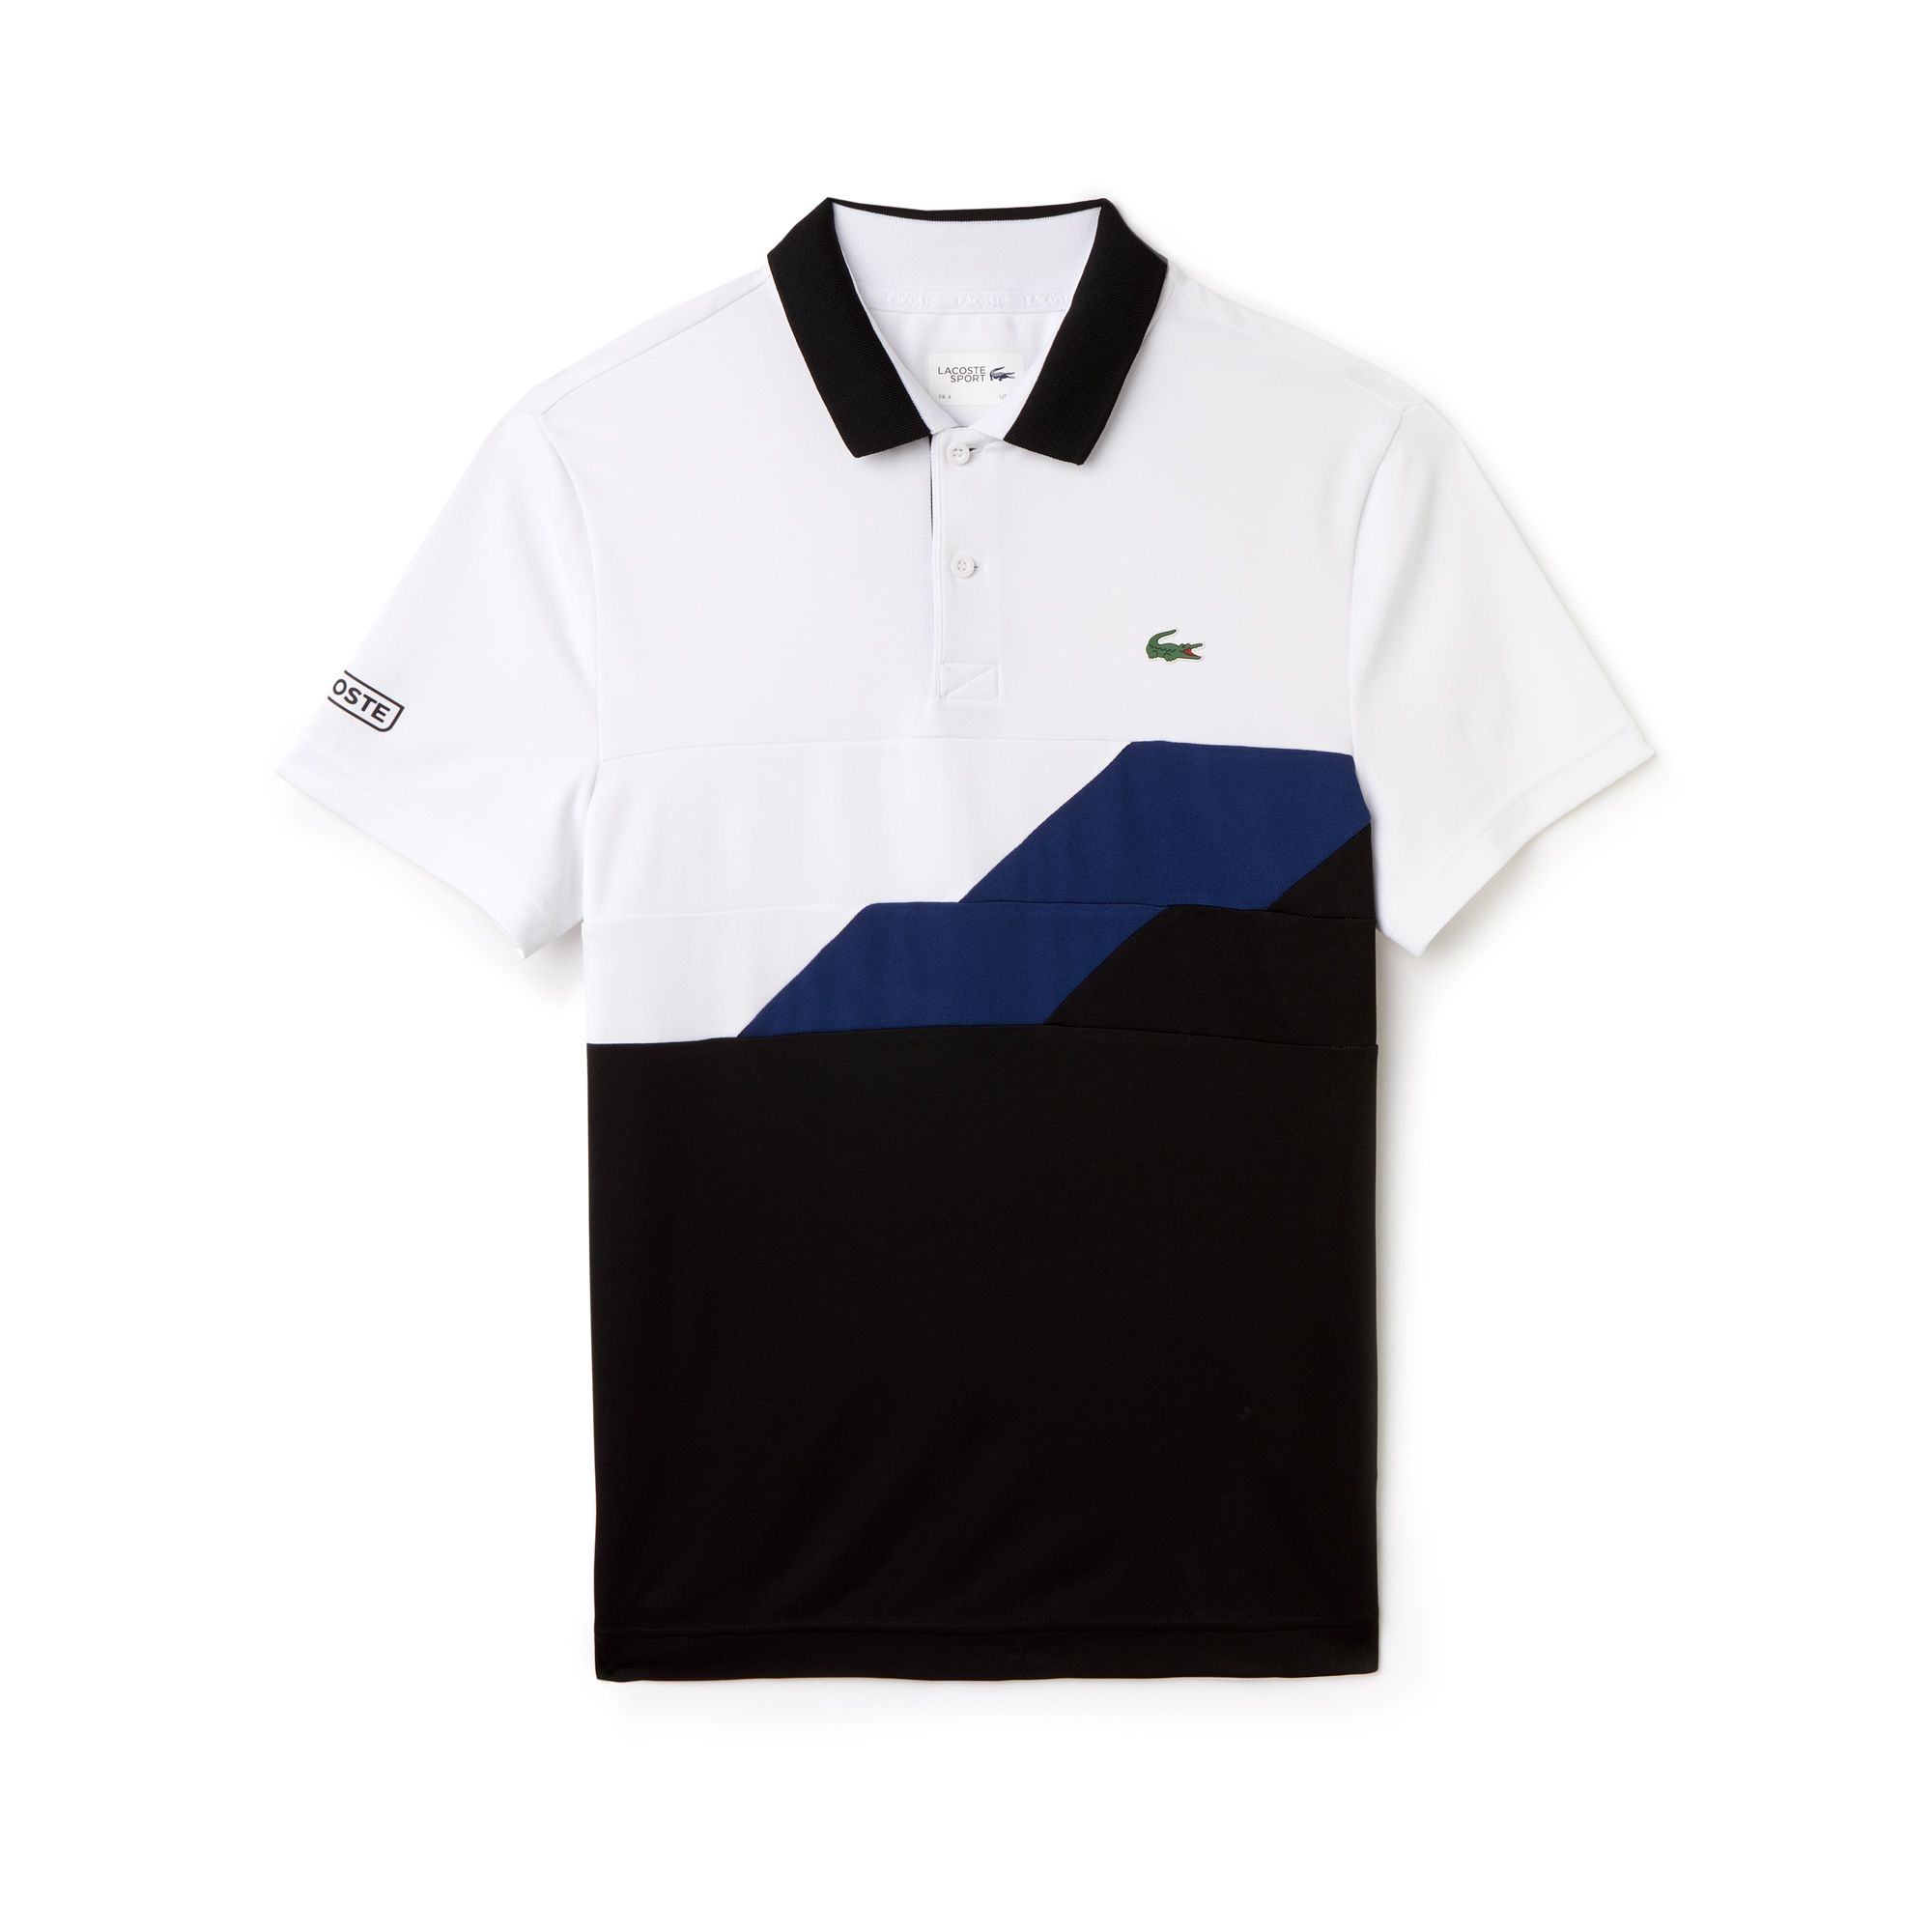 71997363dc Men's SPORT Bands Technical Piqué Tennis Polo | LACOSTE